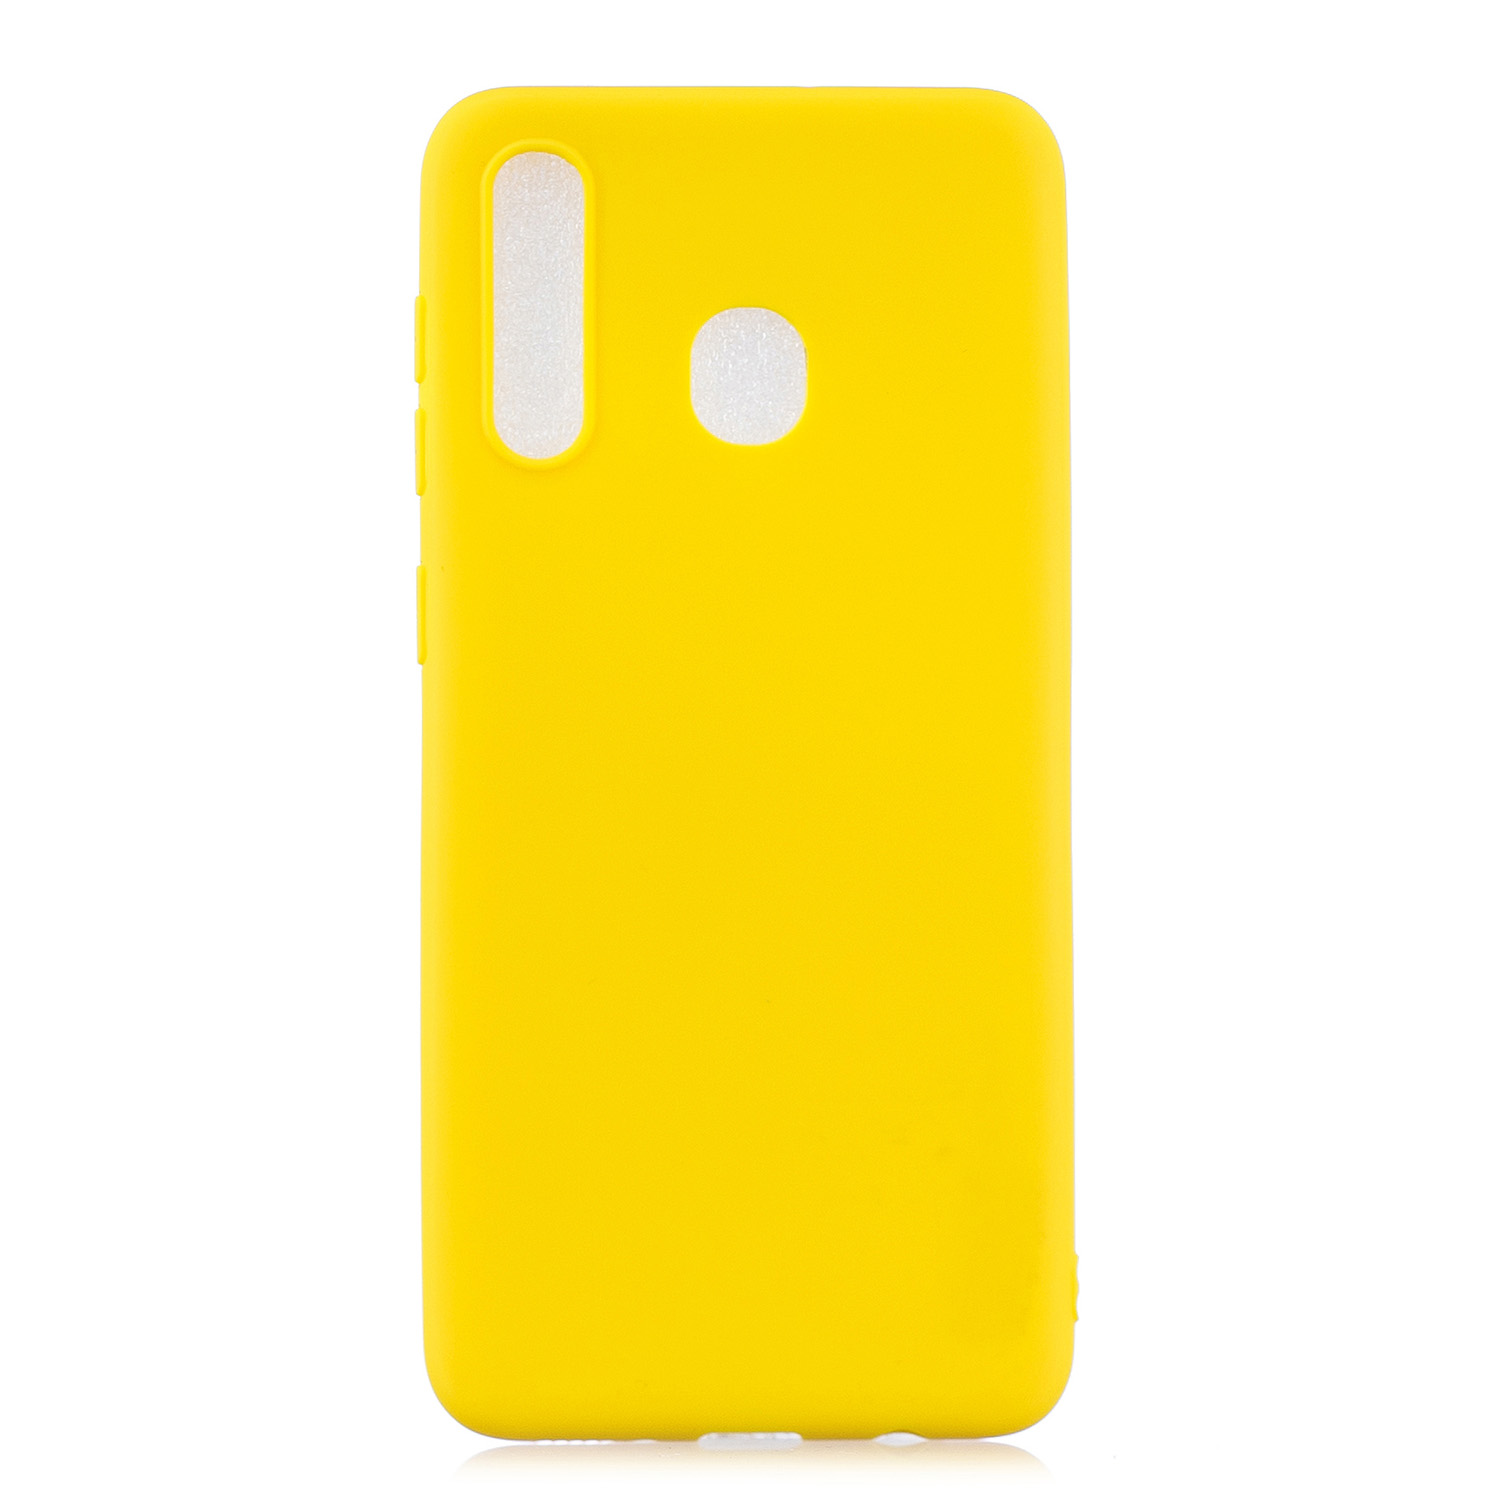 For HUAWEI Y9 2019 Lovely Candy Color Matte TPU Anti-scratch Non-slip Protective Cover Back Case yellow